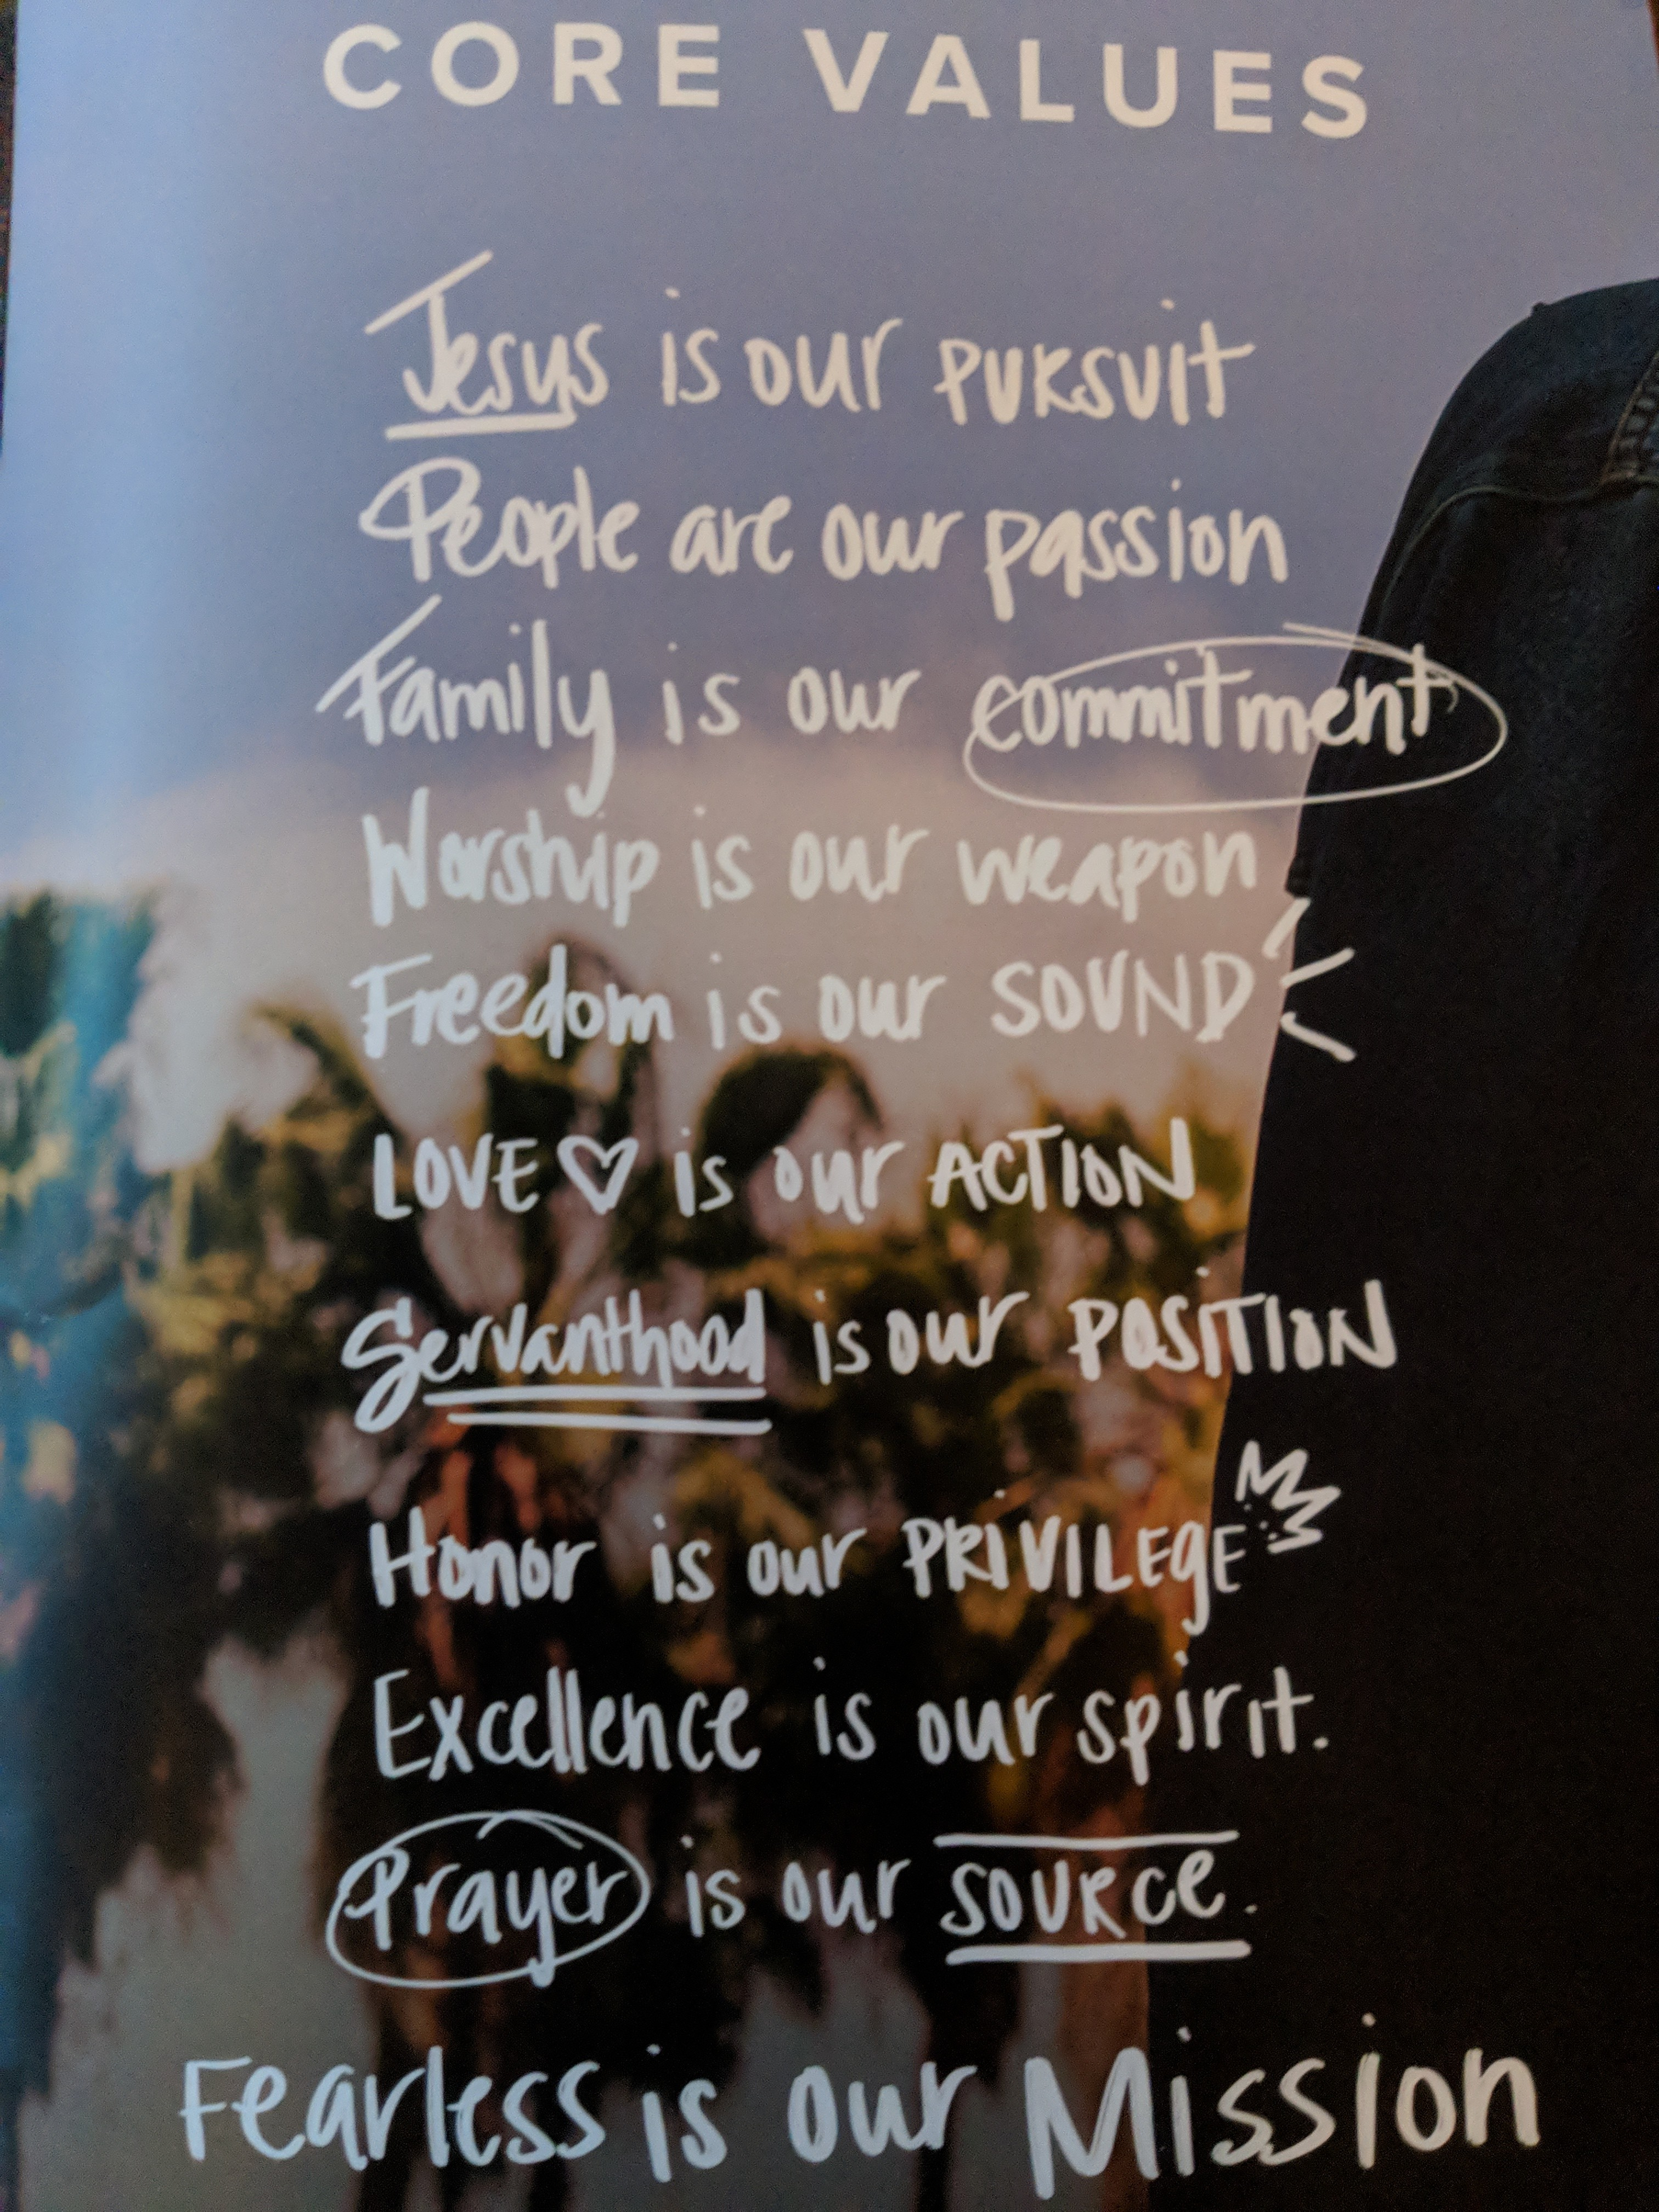 img_beliefs_core_values_mission